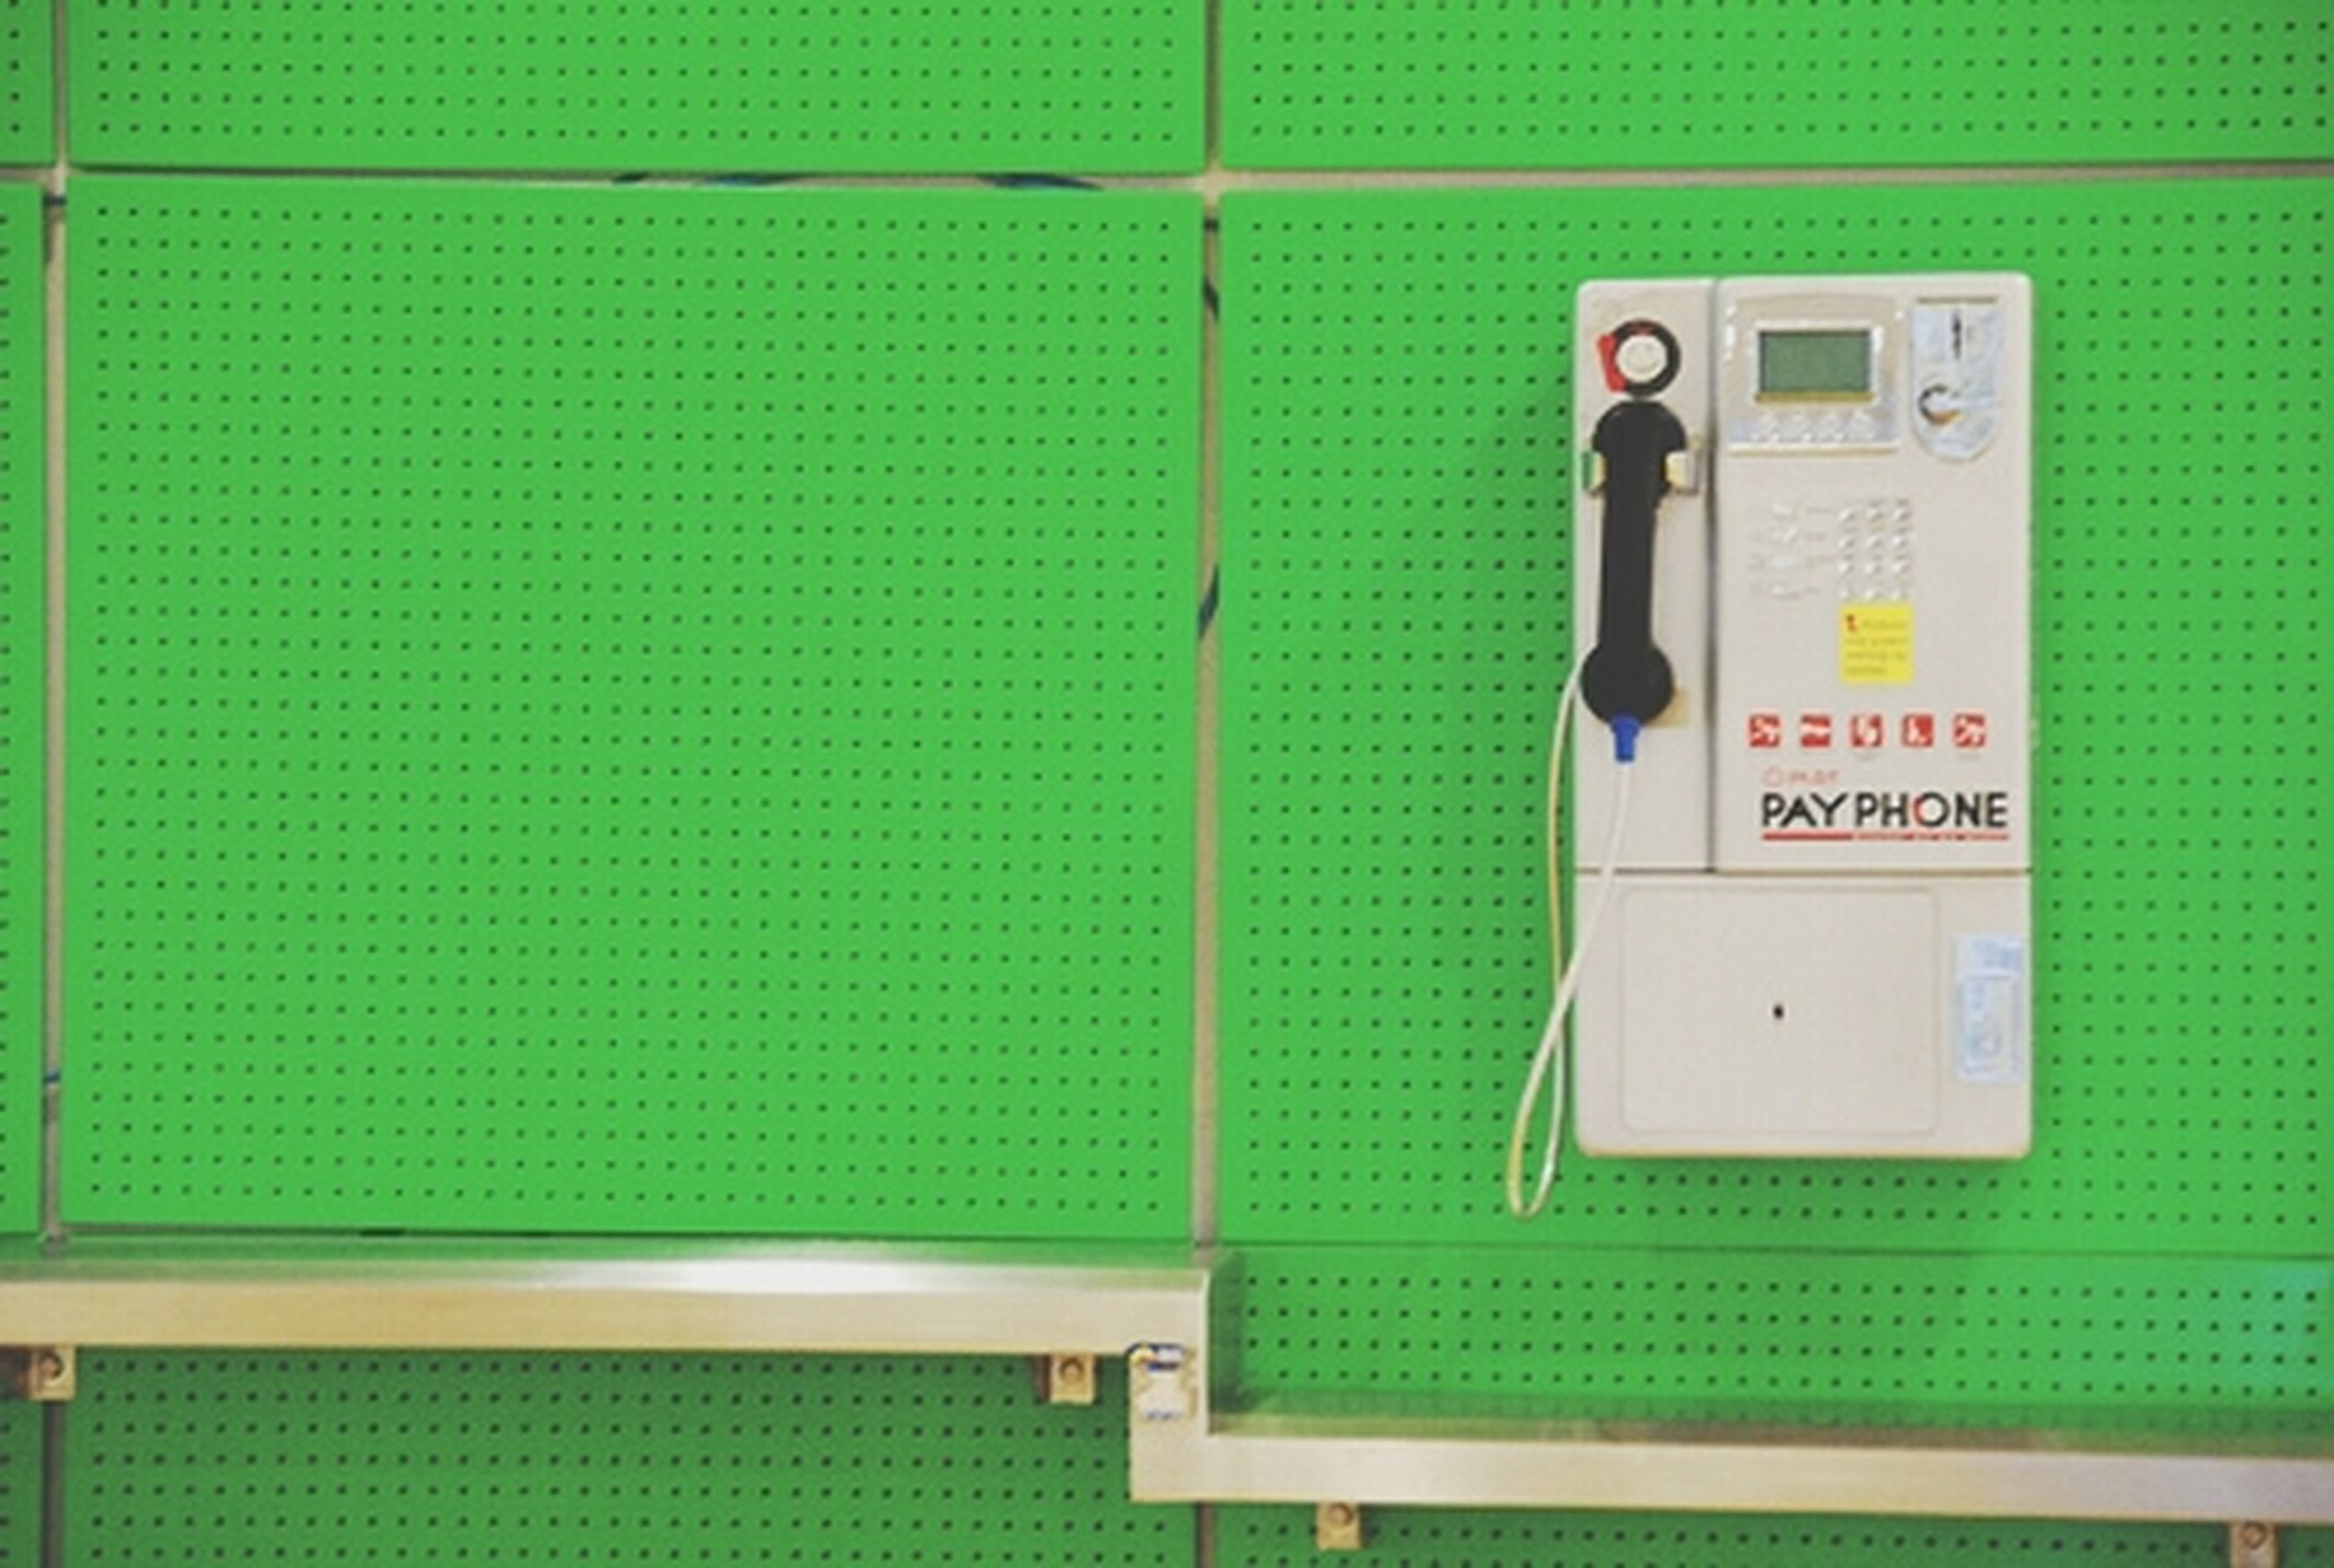 communication, indoors, wall - building feature, text, technology, western script, number, connection, blue, wall, door, close-up, closed, convenience, sign, safety, information sign, built structure, green color, guidance